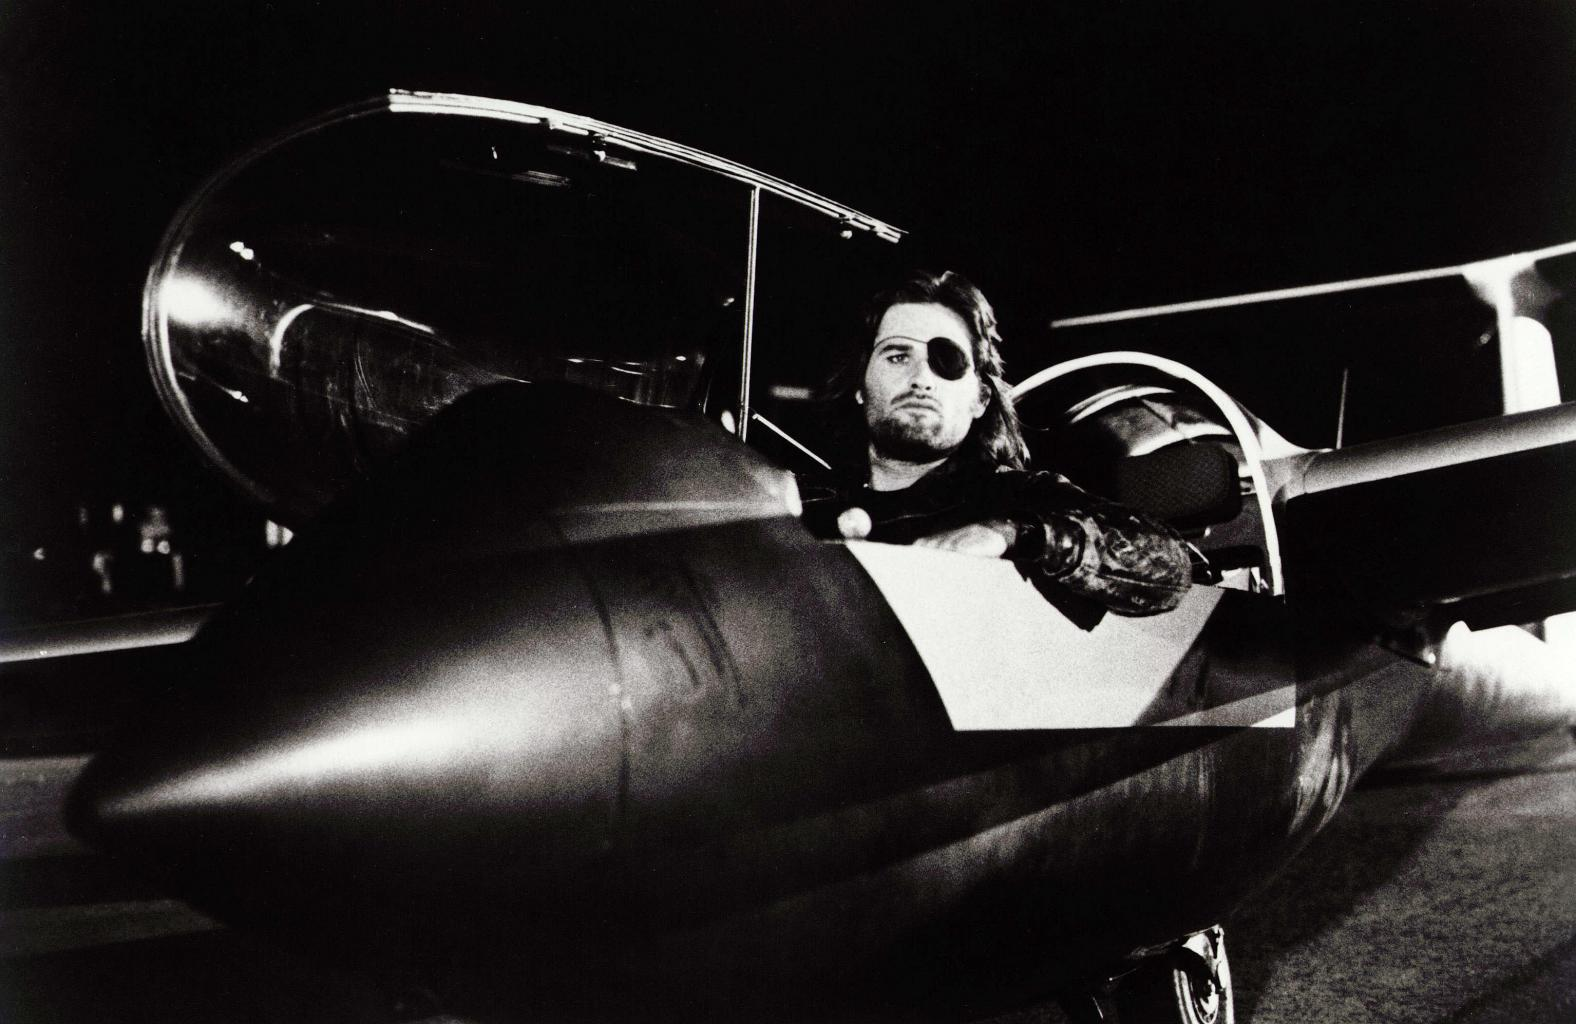 Kurt Russell Reveals He Was the Pilot Who Reported the Phoenix Lights UFO Sighting       '  Watch